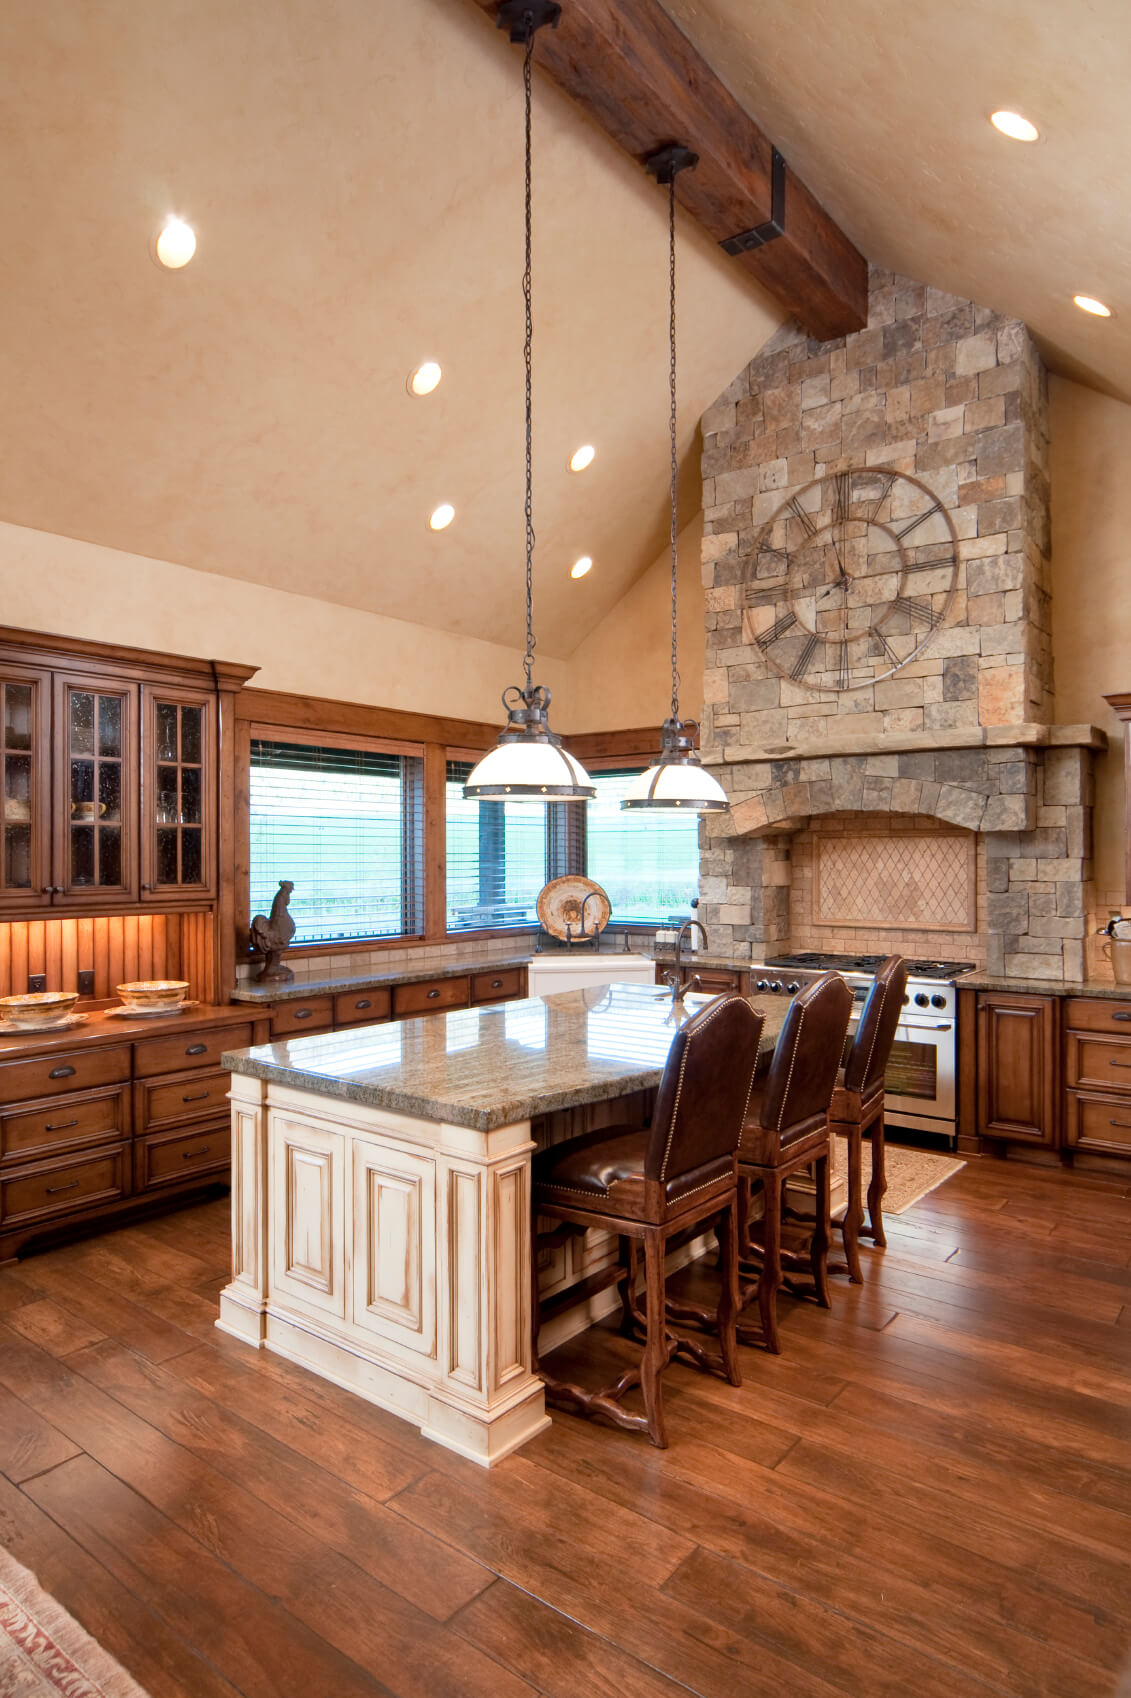 48 luxury dream kitchen designs worth every penny (photos)